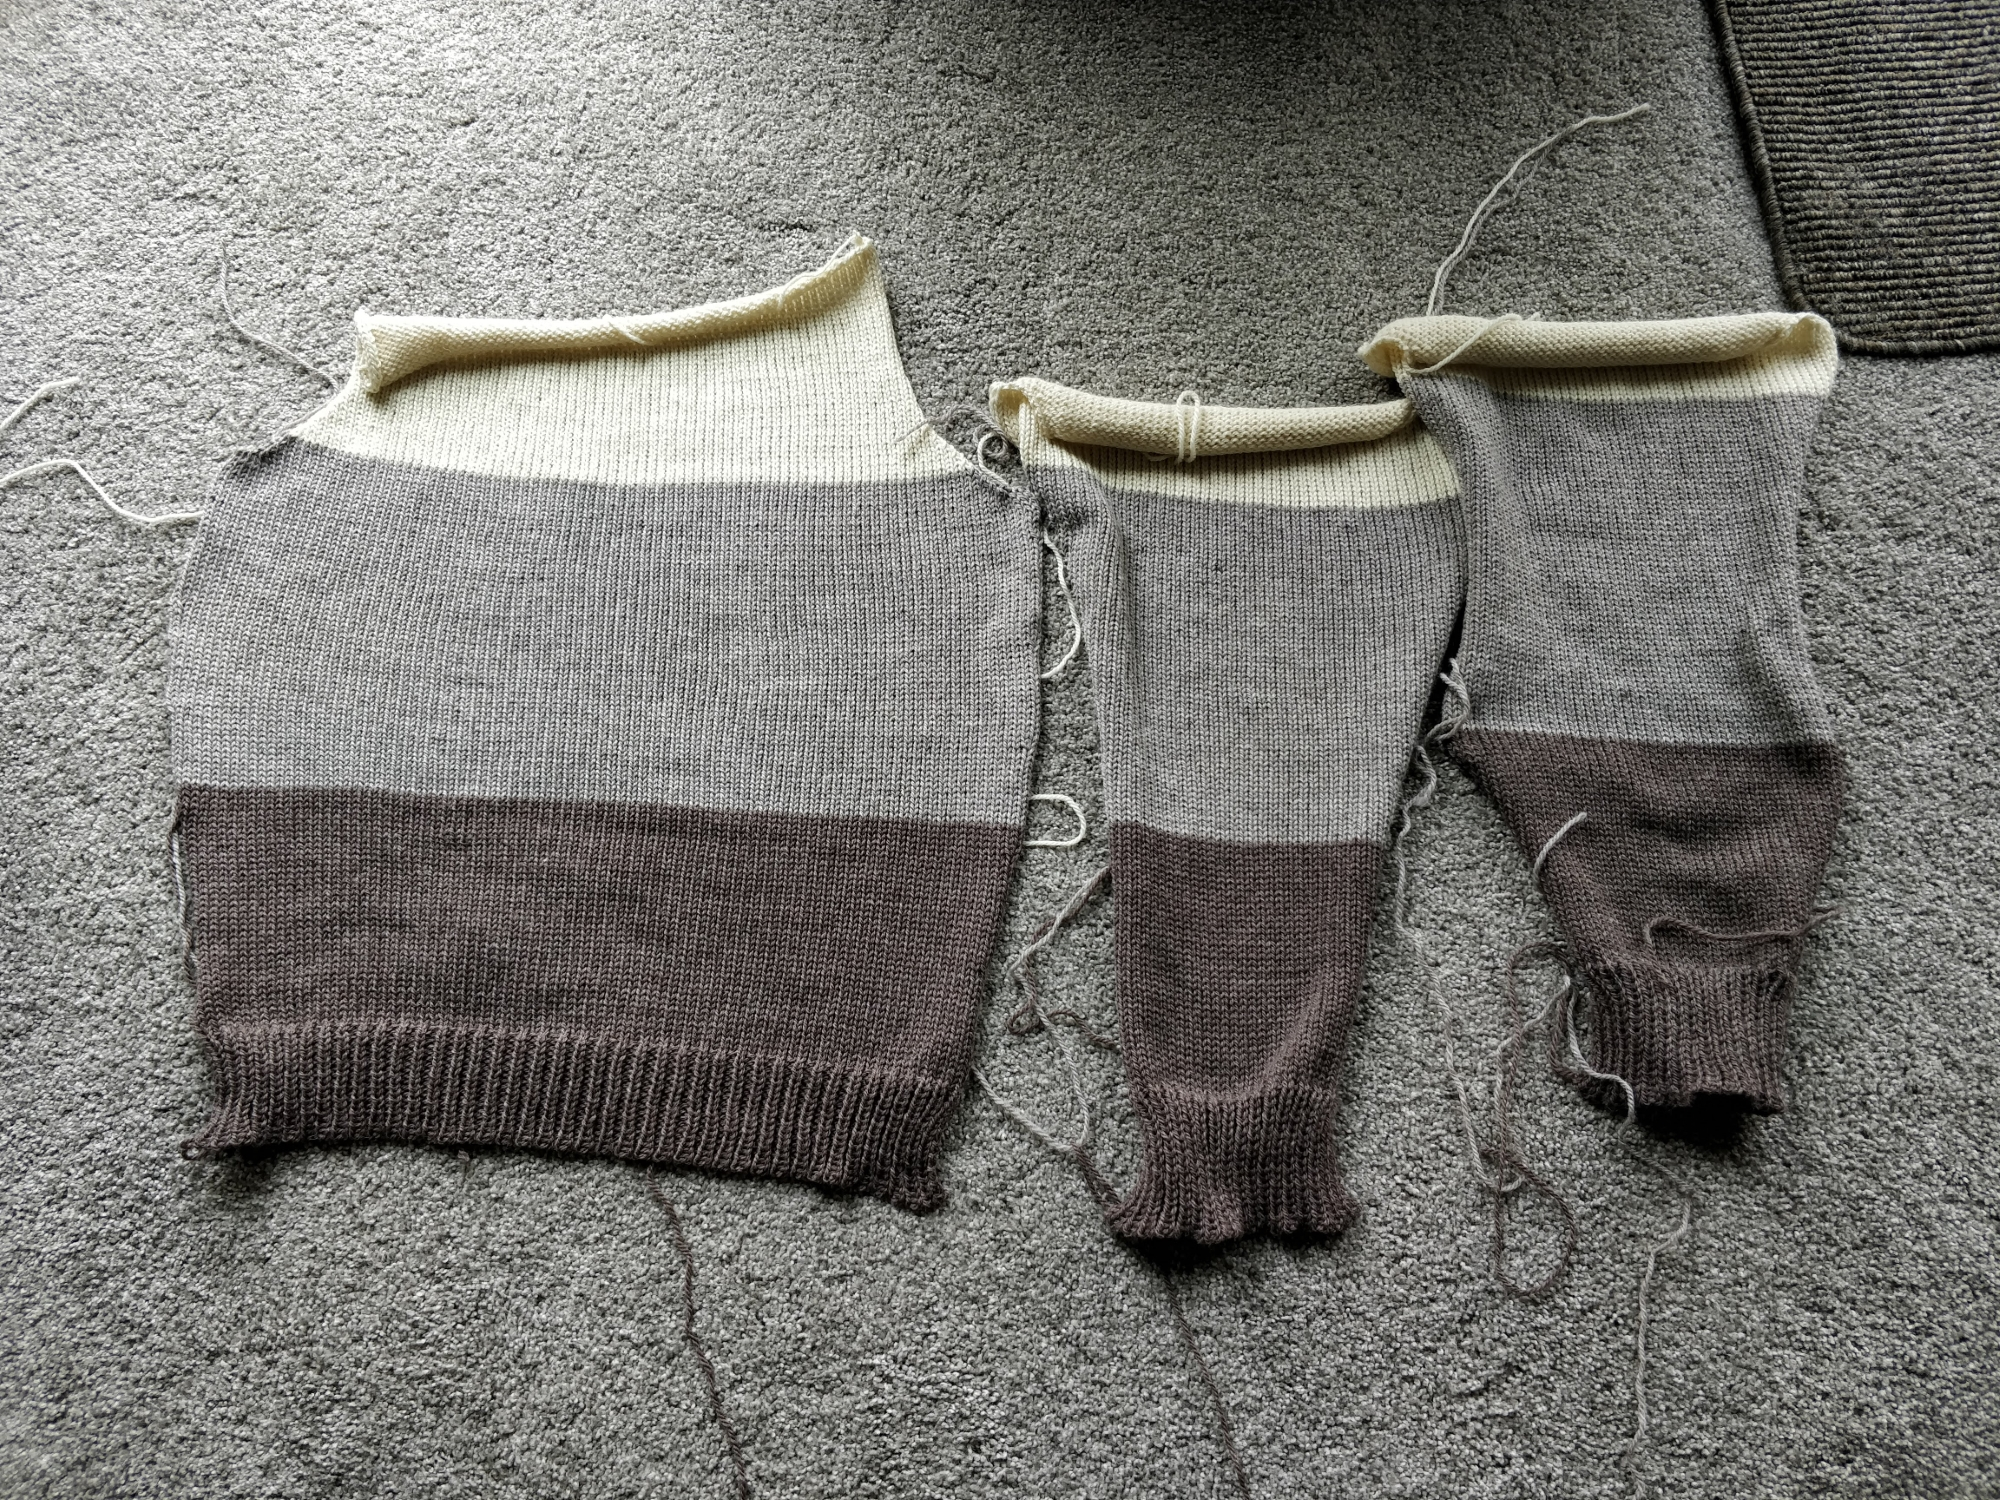 The back and two sleeves of a colourblock sweater - cream at the top, light grayish tan in the middle, and darker brown at the bottom.